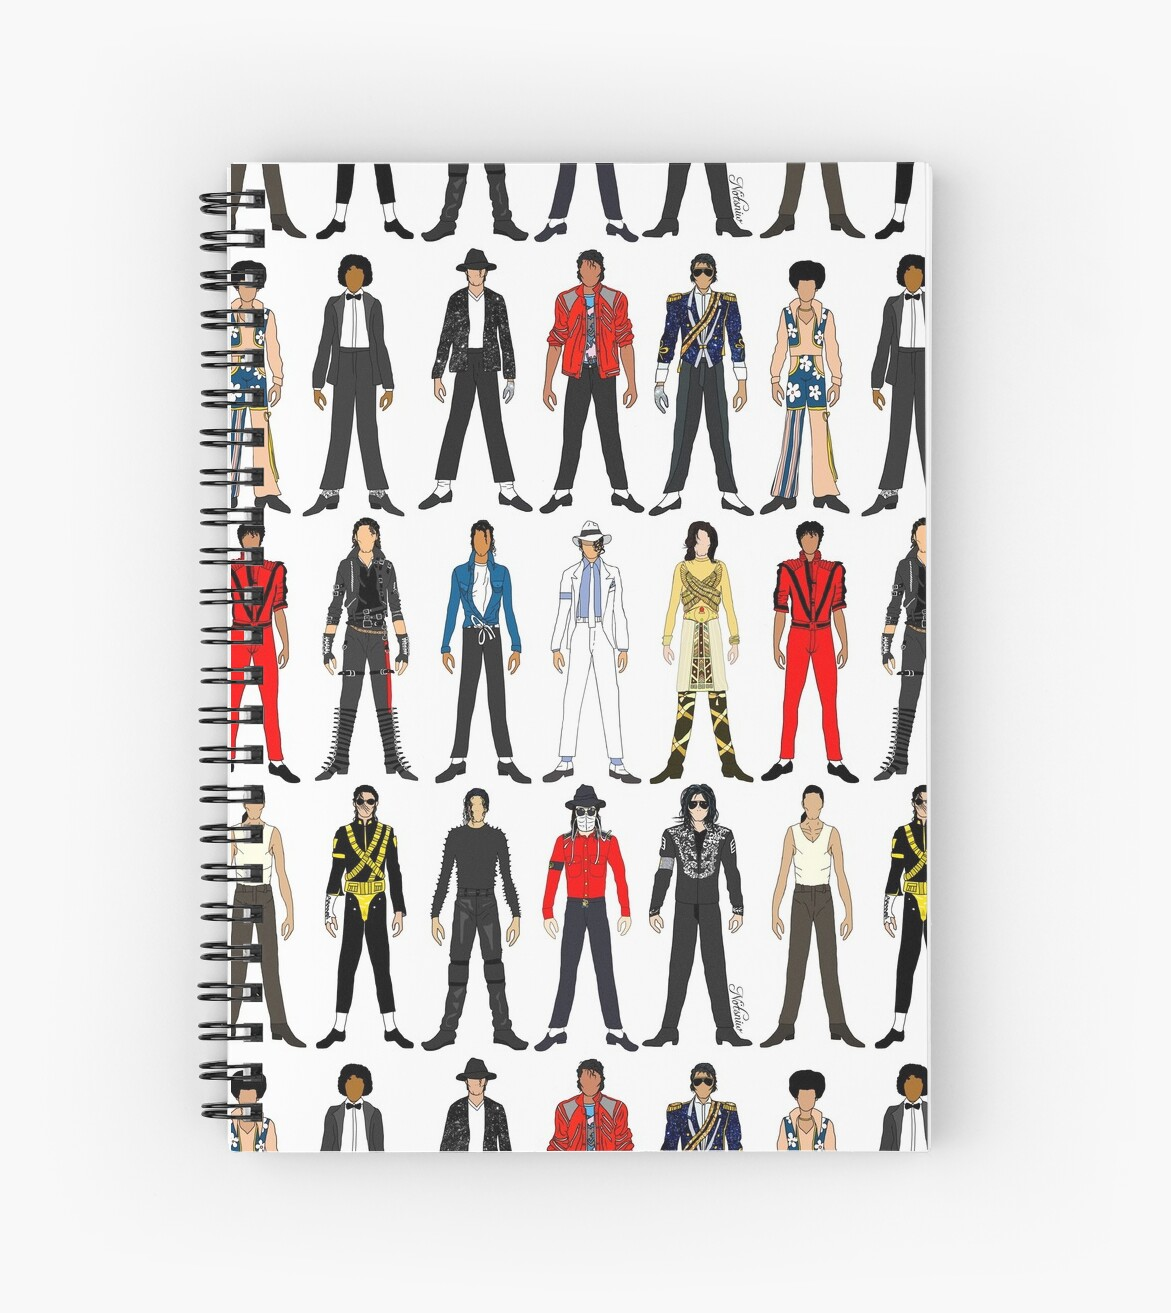 King Jackson Outfits Of King Jackson Pop Music Fashion Spiral Notebook By Notsniw Art